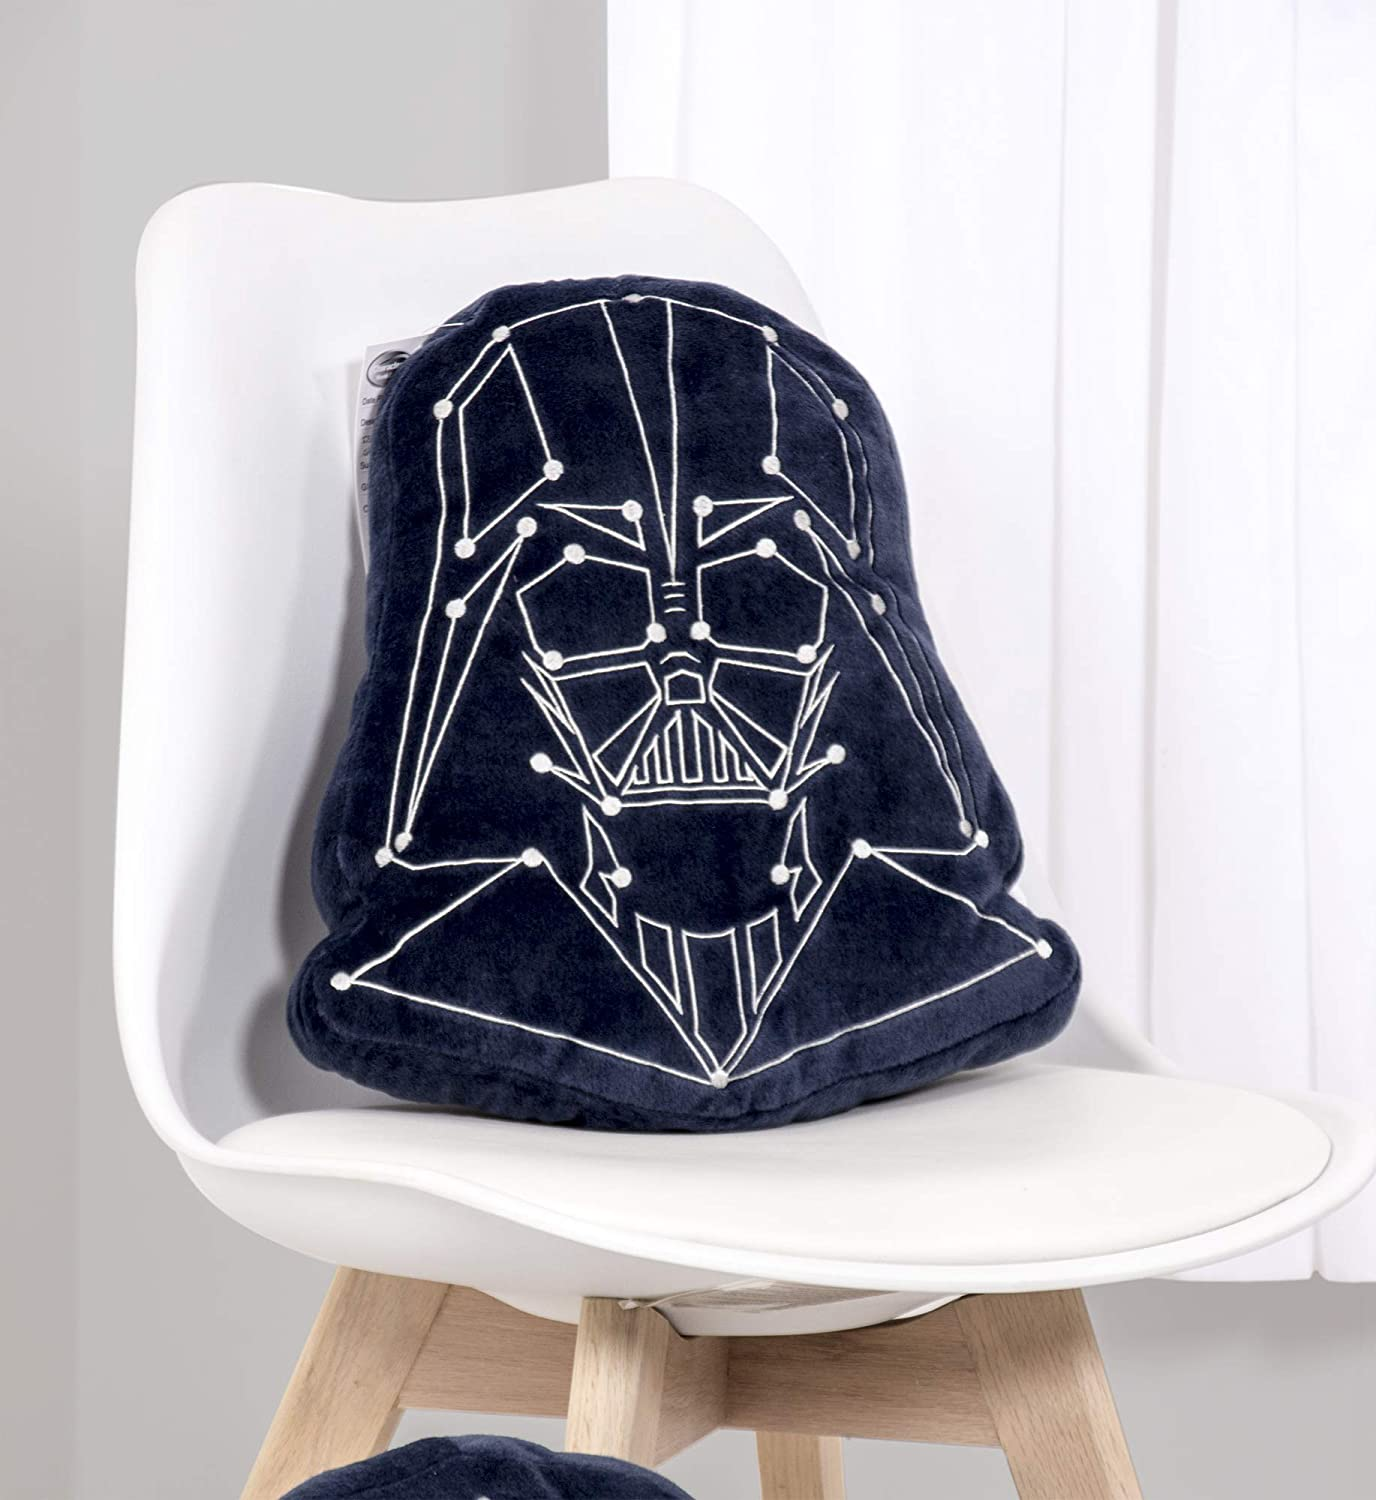 Funda Nordica Lego Star Wars.Star Wars Official Darth Vader Design Kids Shaped Cushion Pillow Stuffed Plush Shaped Pillow Perfect For Any Bedroom Or Nursery